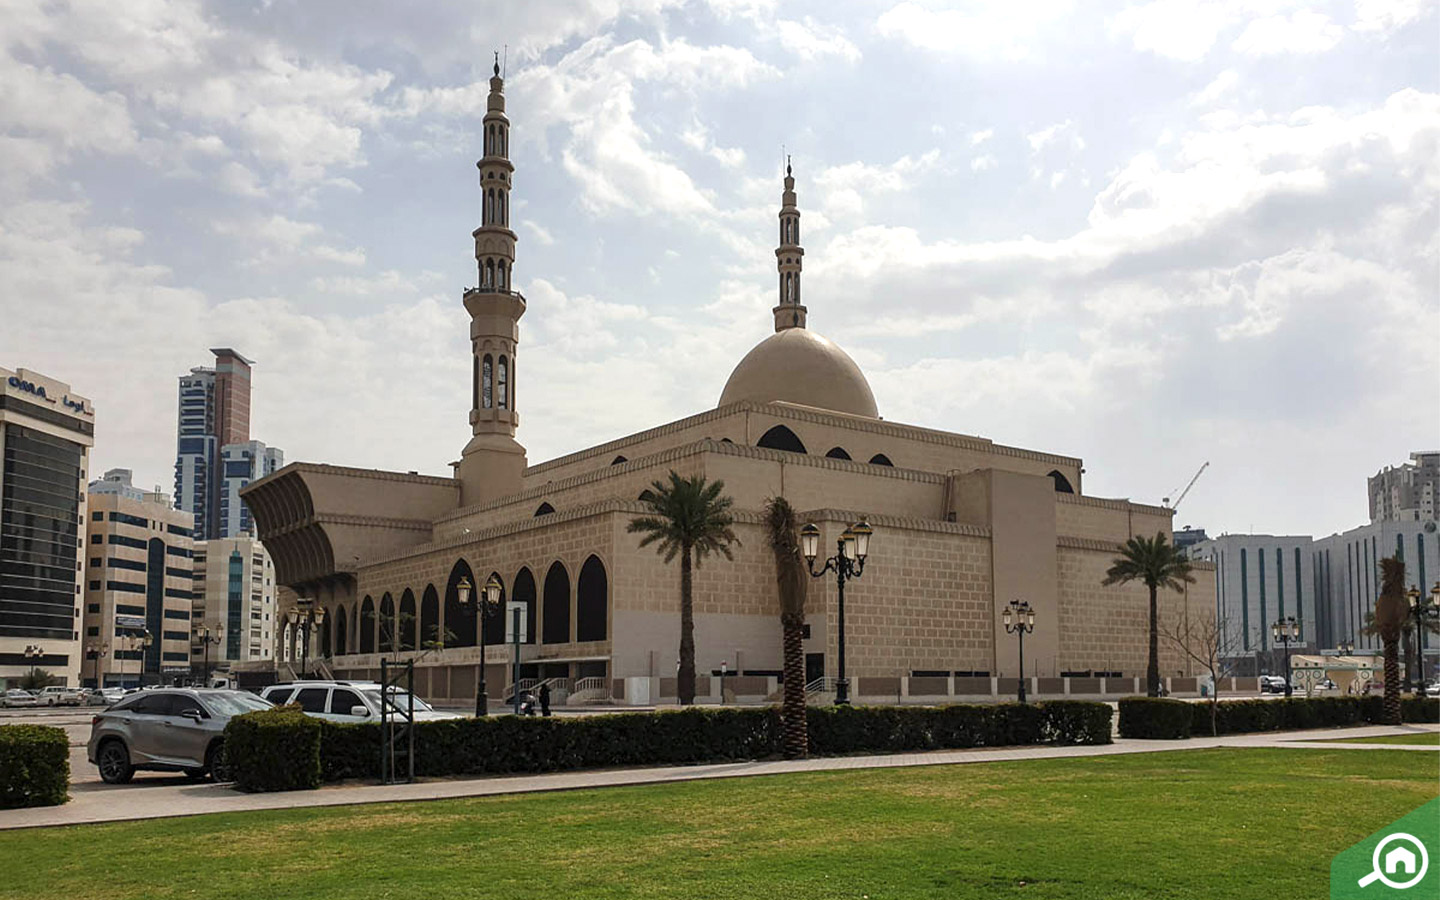 King Faisal Mosque in Al Qasimia